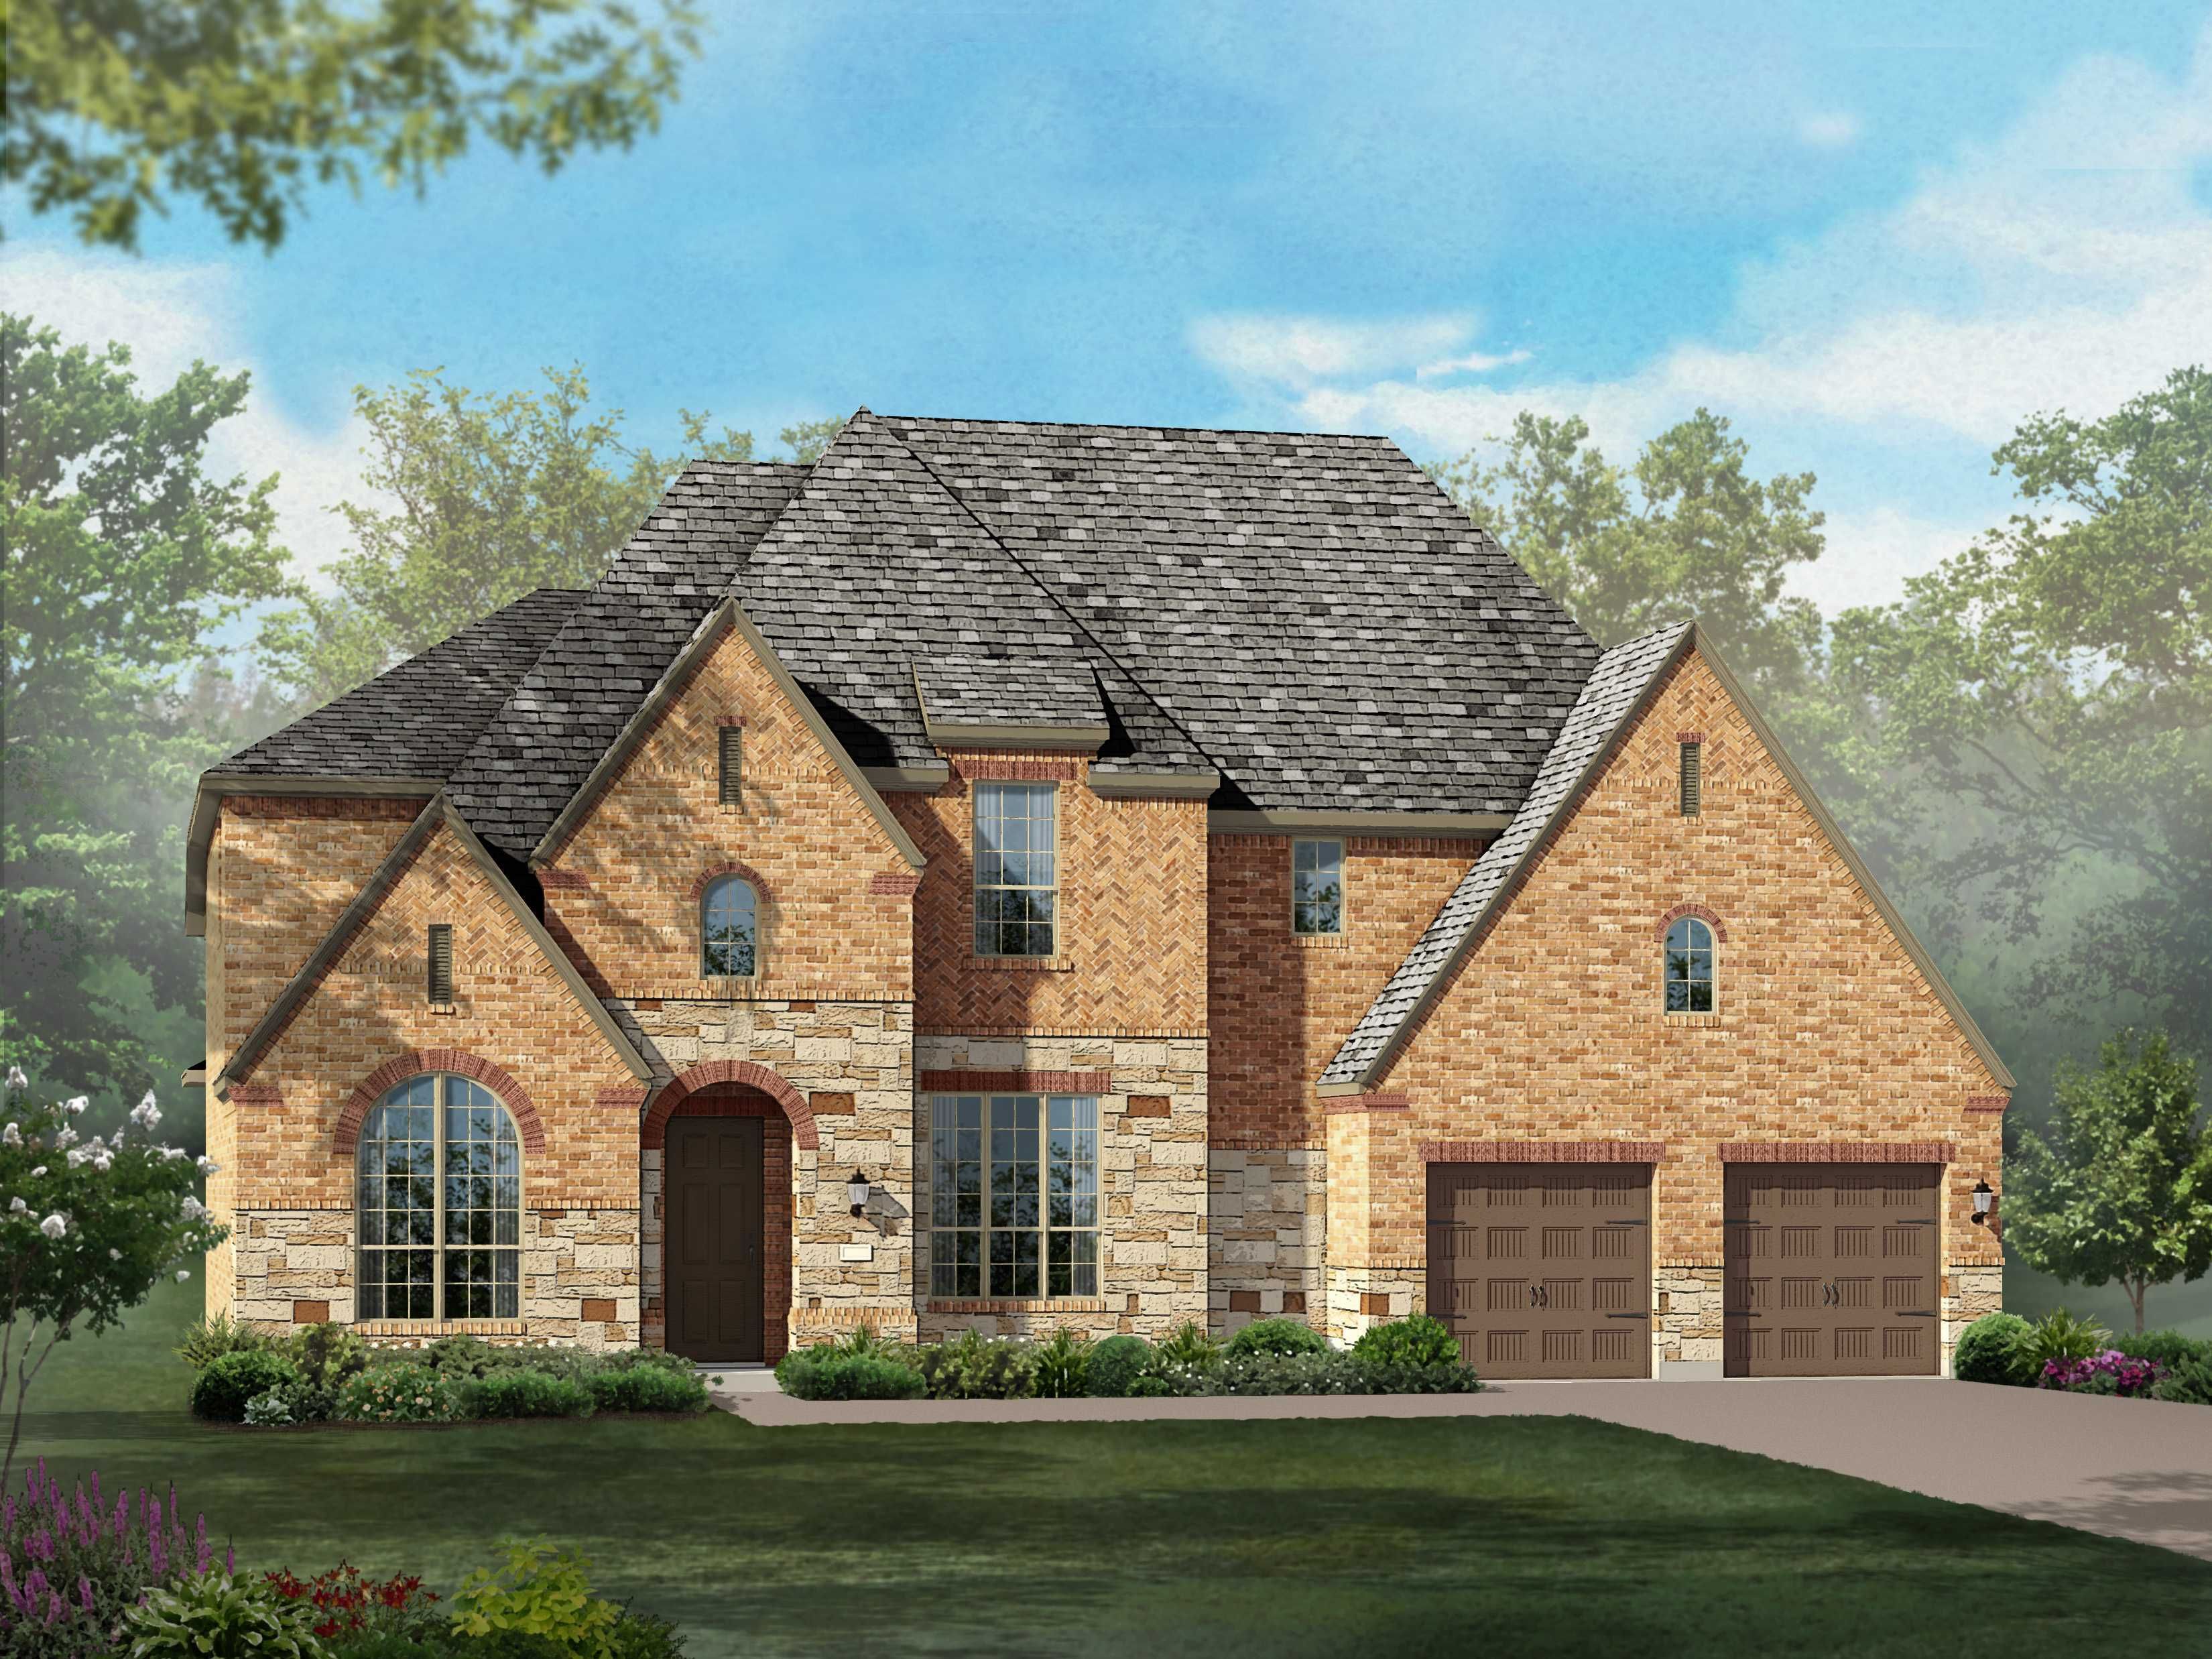 Single Family for Sale at Overlook At Stonewall Estates - Plan 294 8118 Juliet Hill San Antonio, Texas 78256 United States